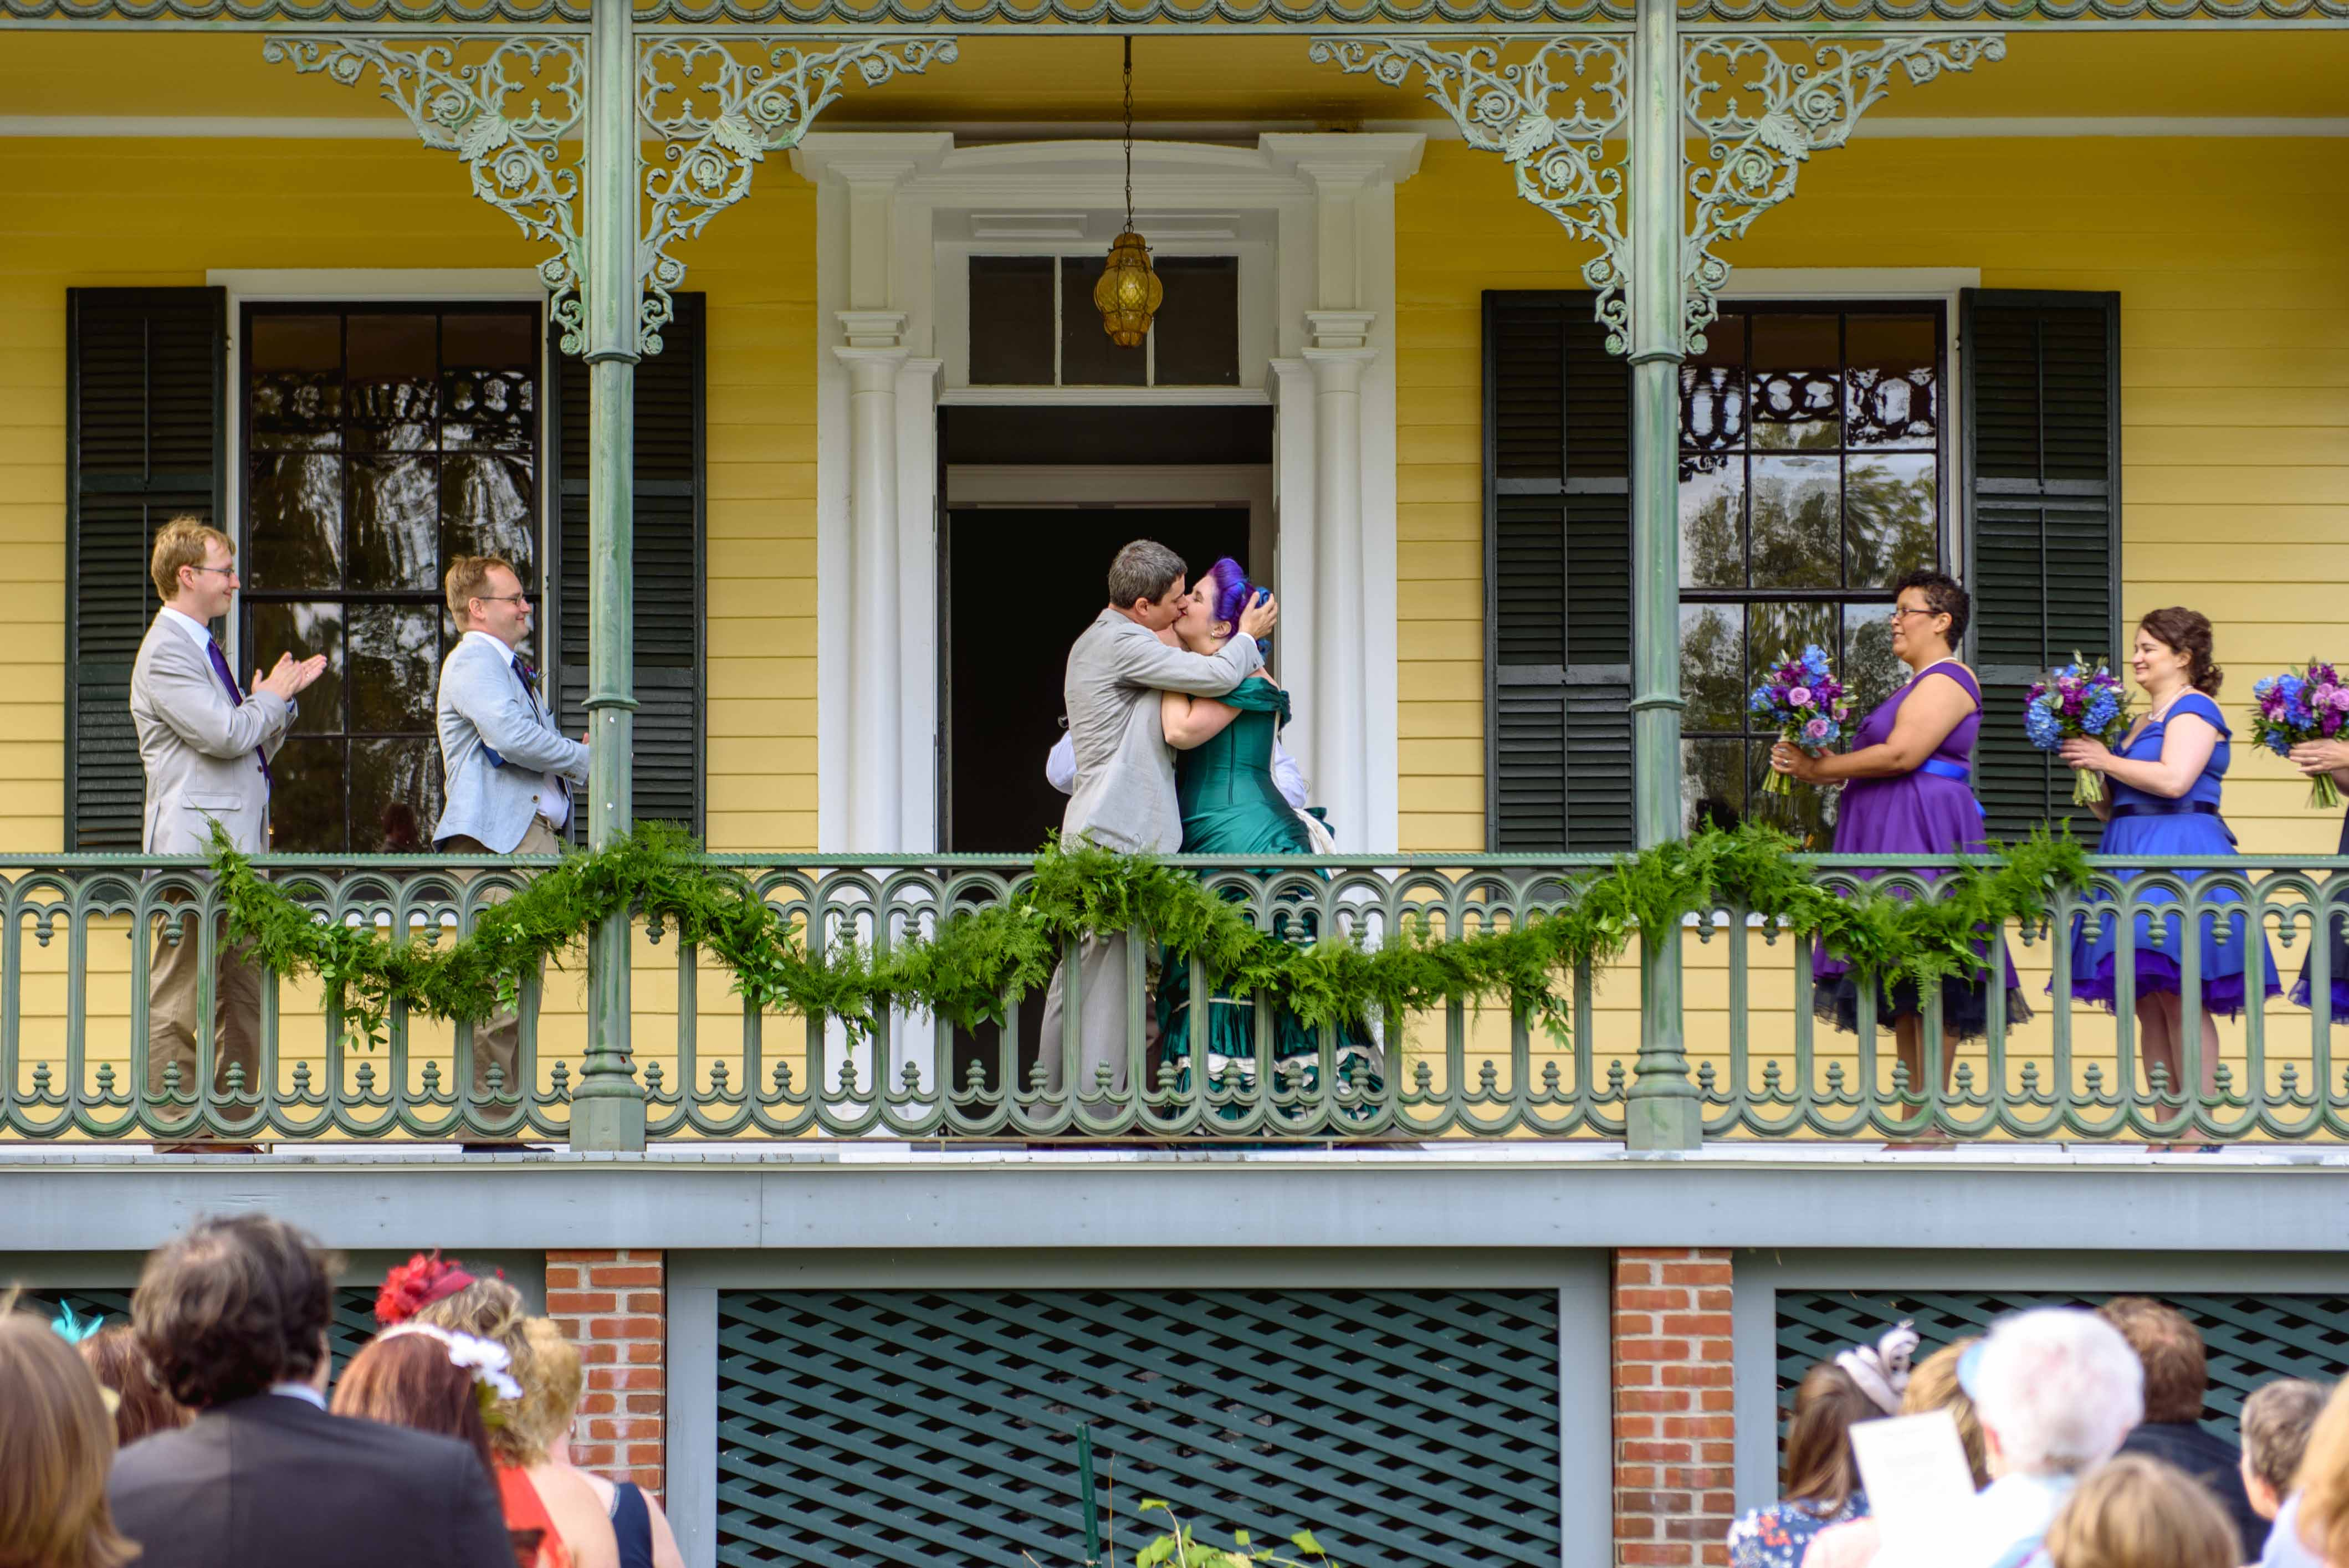 bride and groom kiss on balcony - fun wedding photos - unconventional wedding